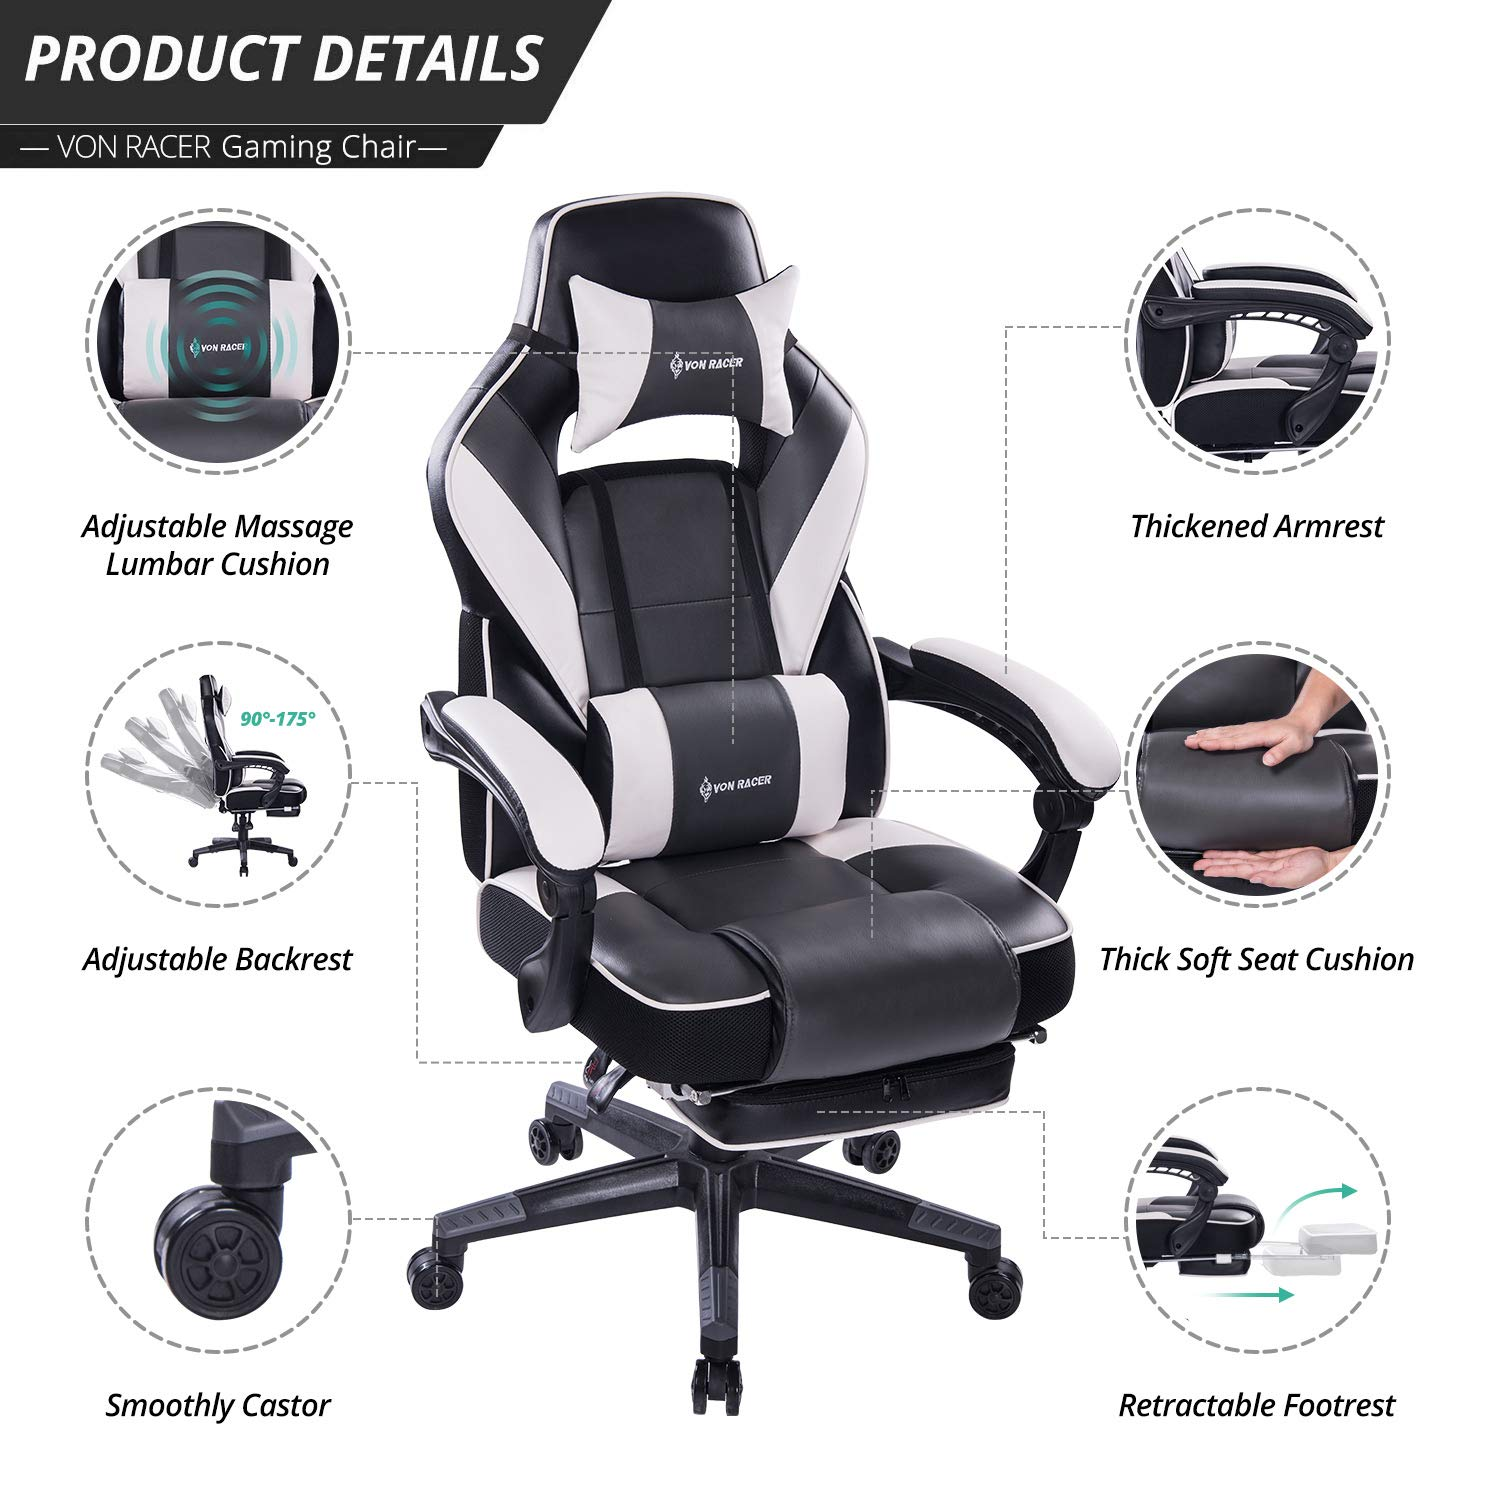 VON RACER Massage Reclining Gaming Chair - Ergonomic High-Back Racing Computer Desk Office Chair with Retractable Footrest and Adjustable Lumbar Cushion (Gray) by VON RACER (Image #3)